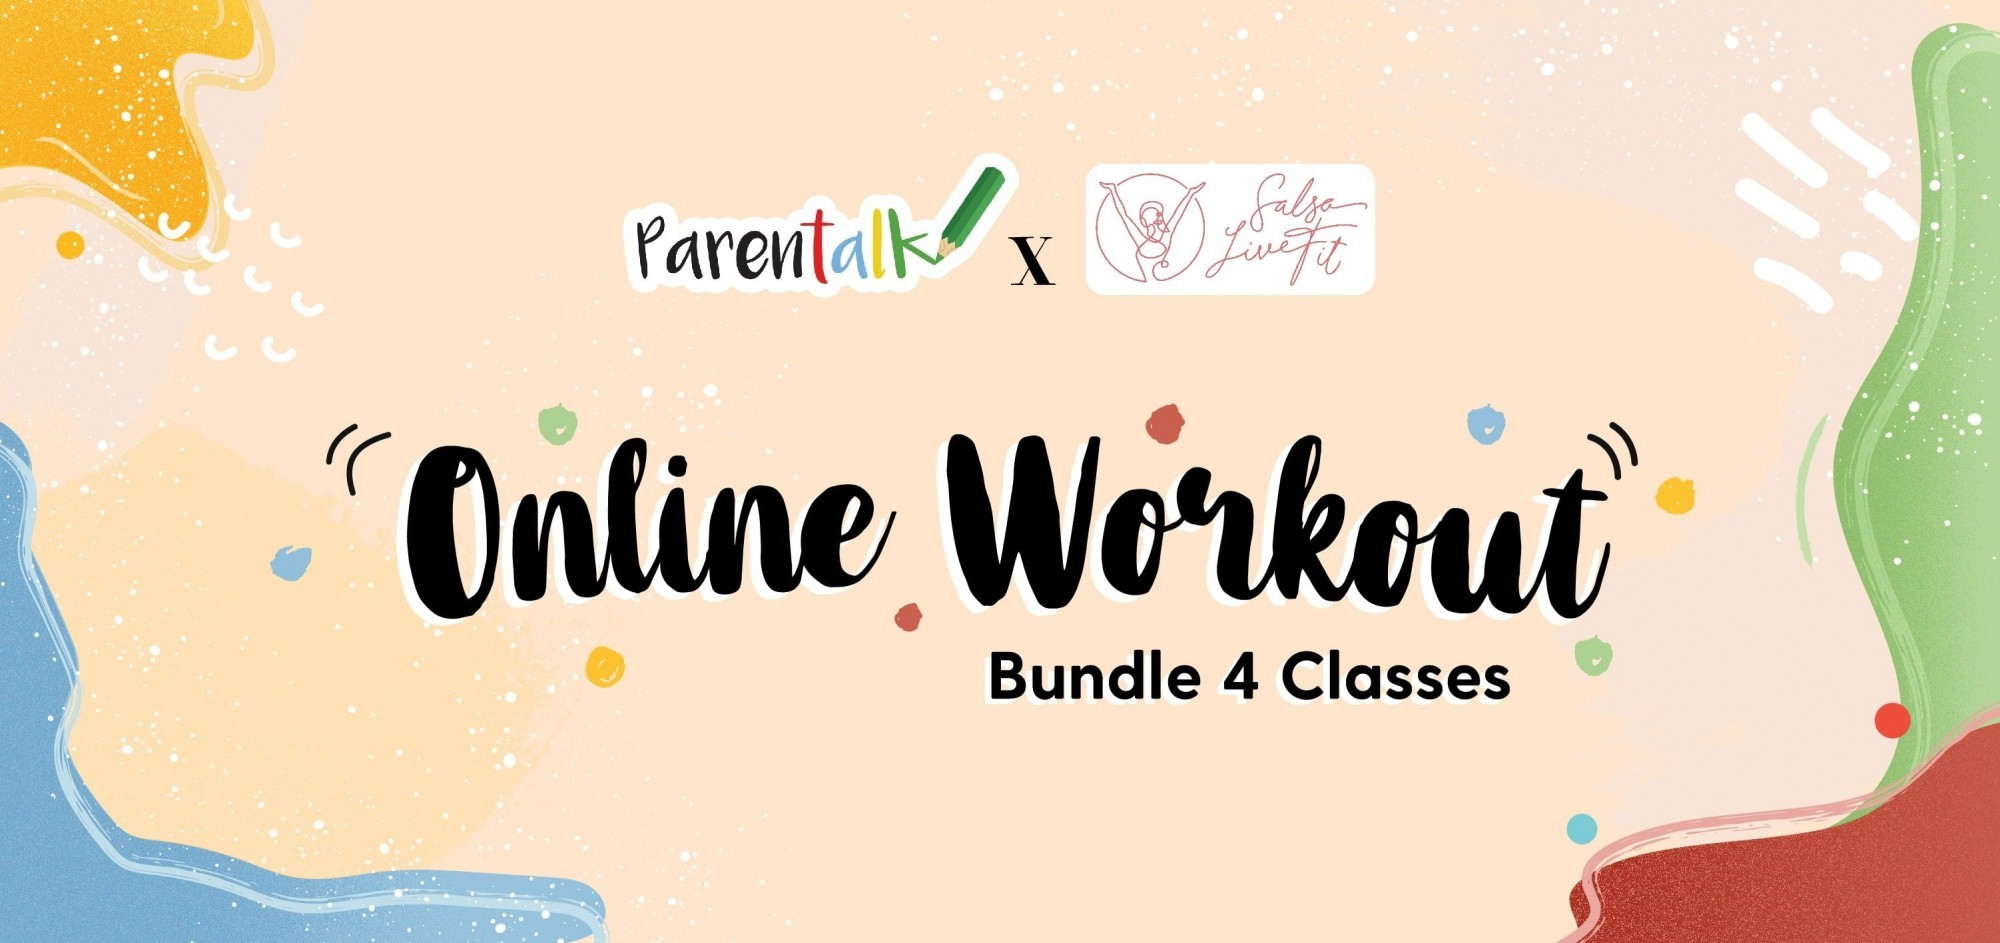 Online Workout (Bundle 4 Classes) - 13 Maret - 3 April